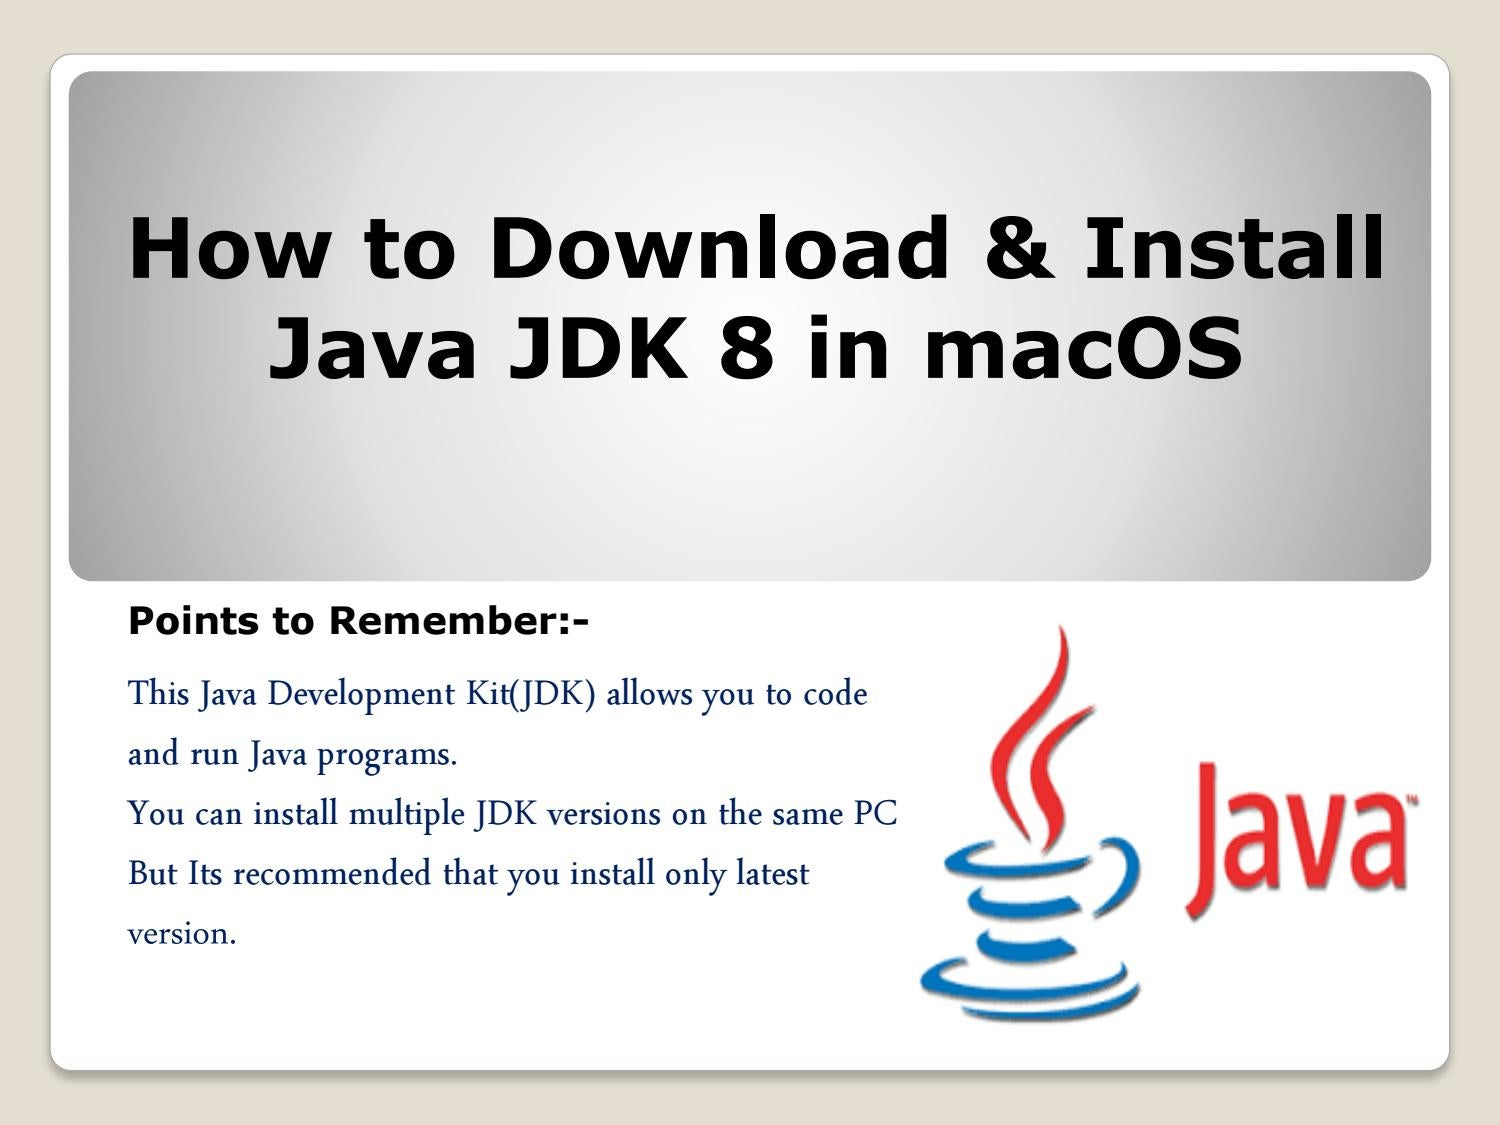 How to download and install java 8 in macOS 1-888-410-9071